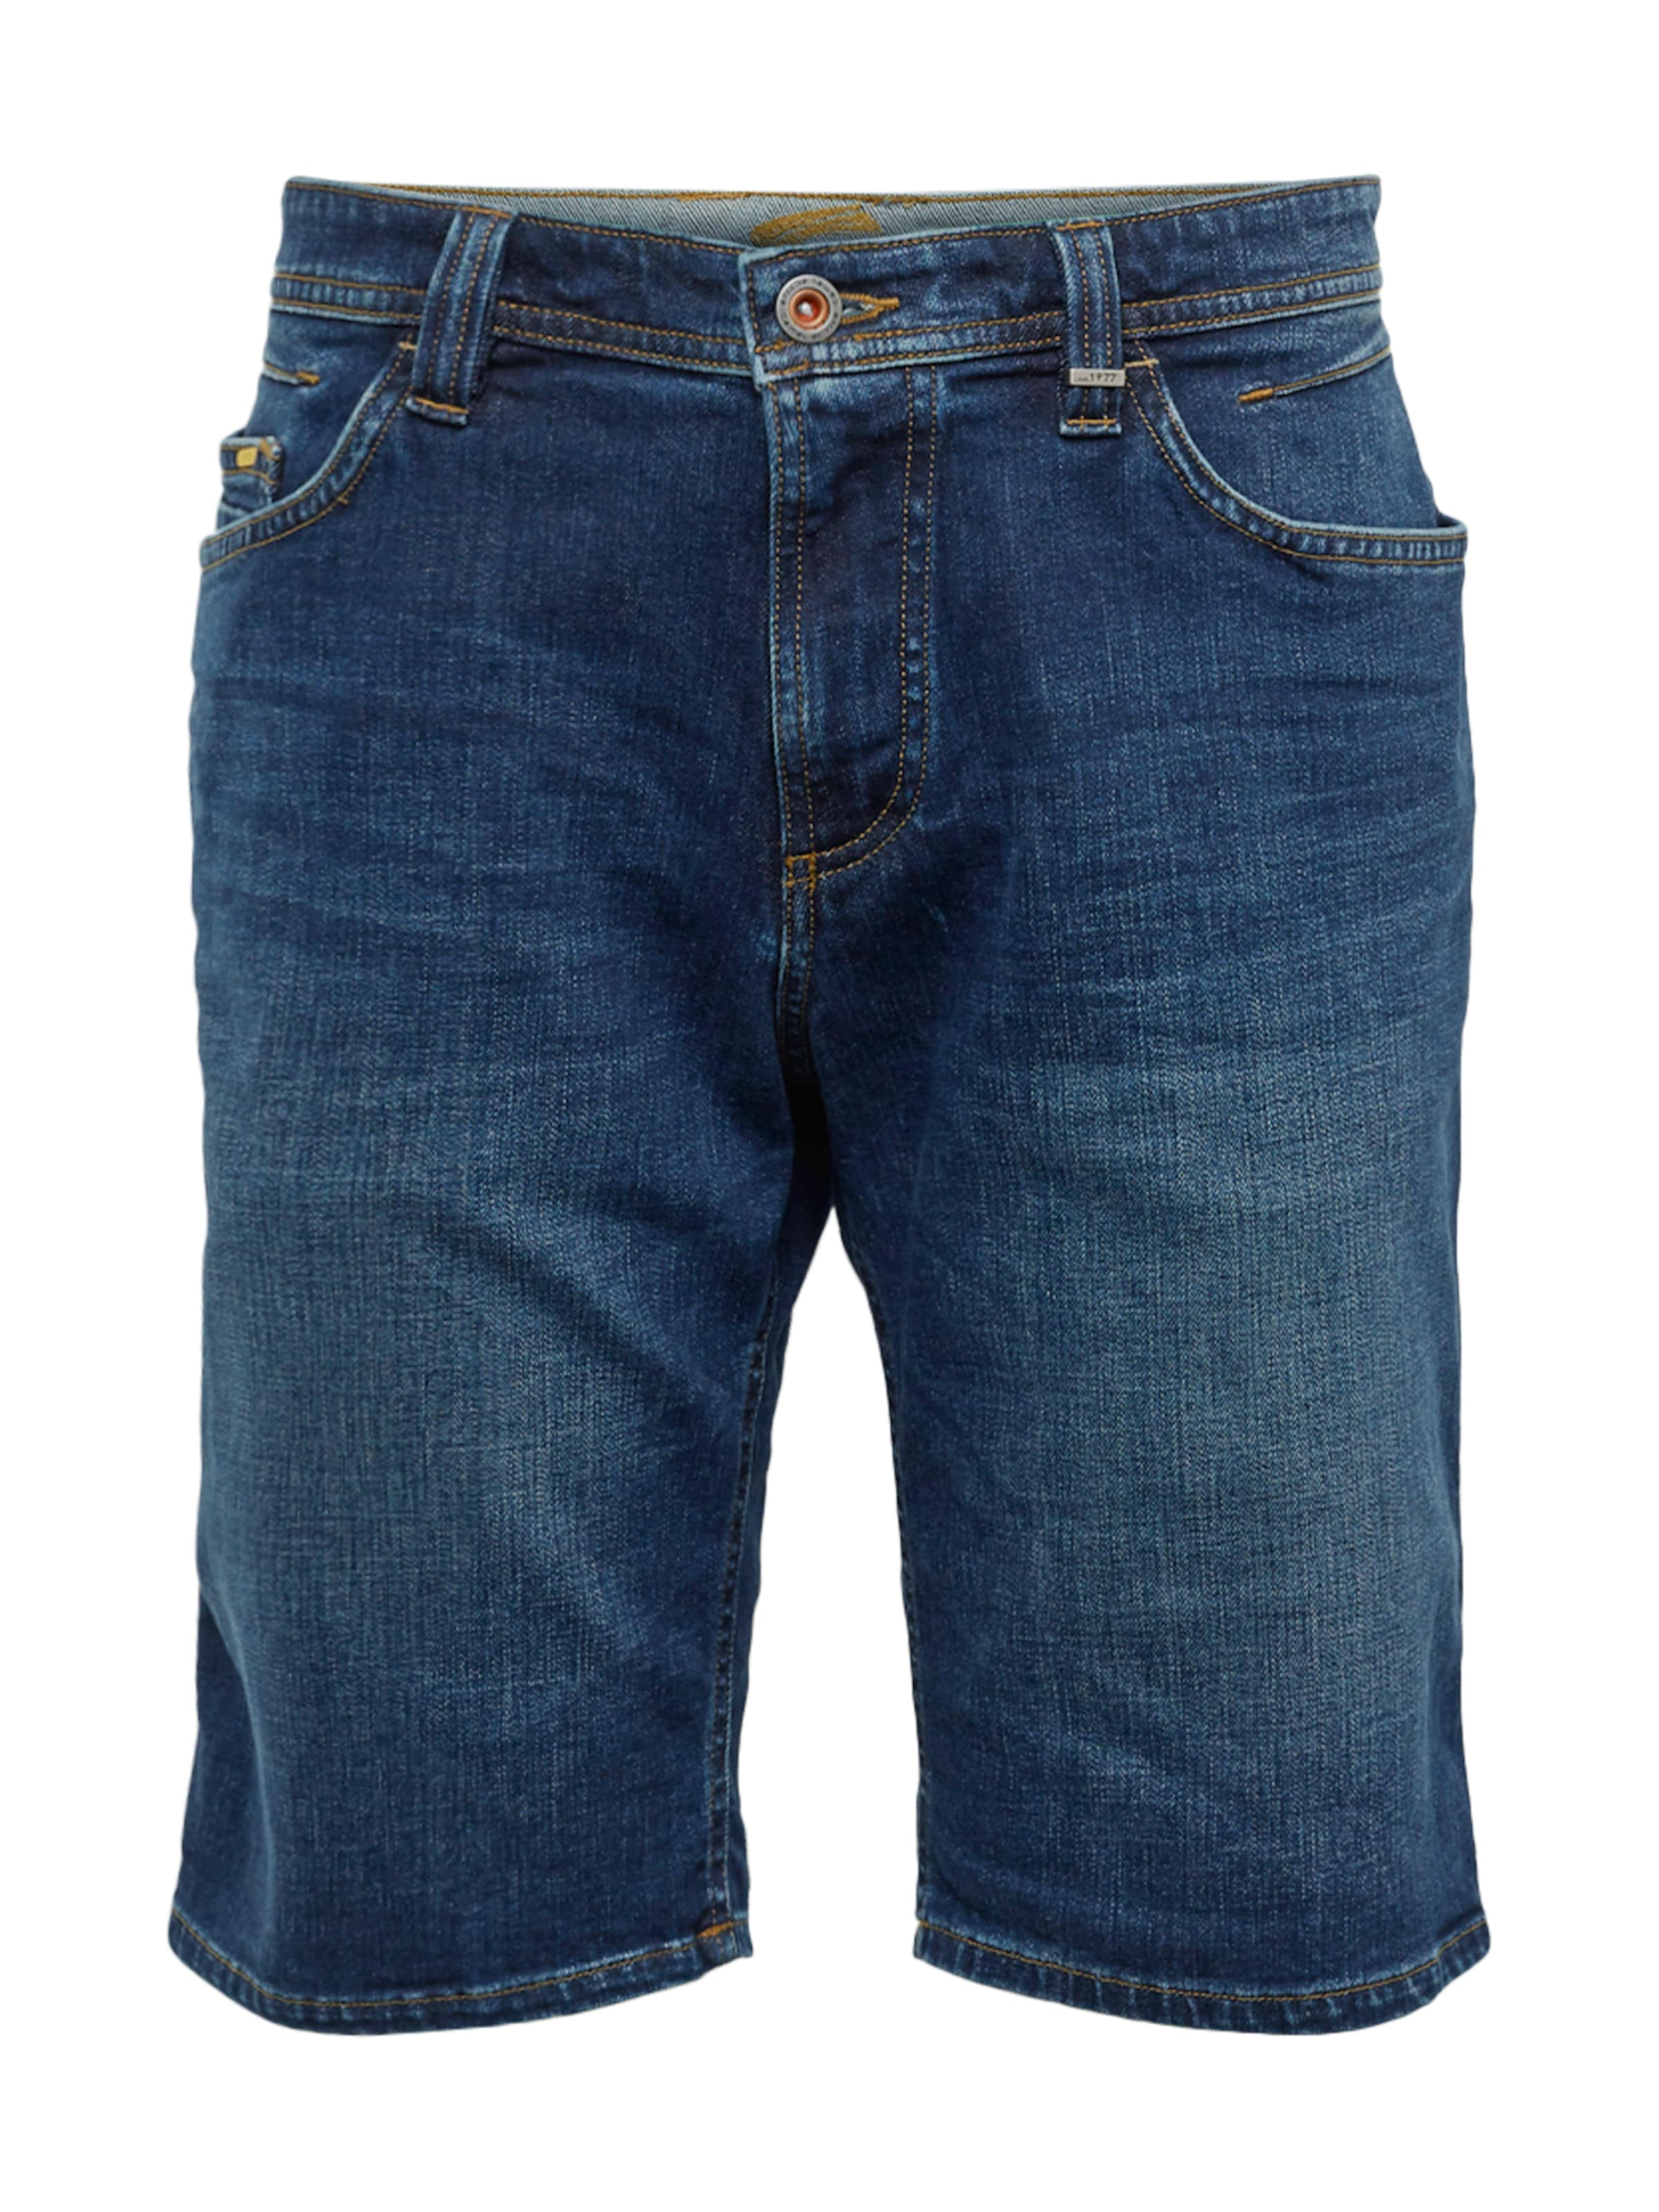 'shorts' Active Camel In Denim Blue Hose vby7gY6f